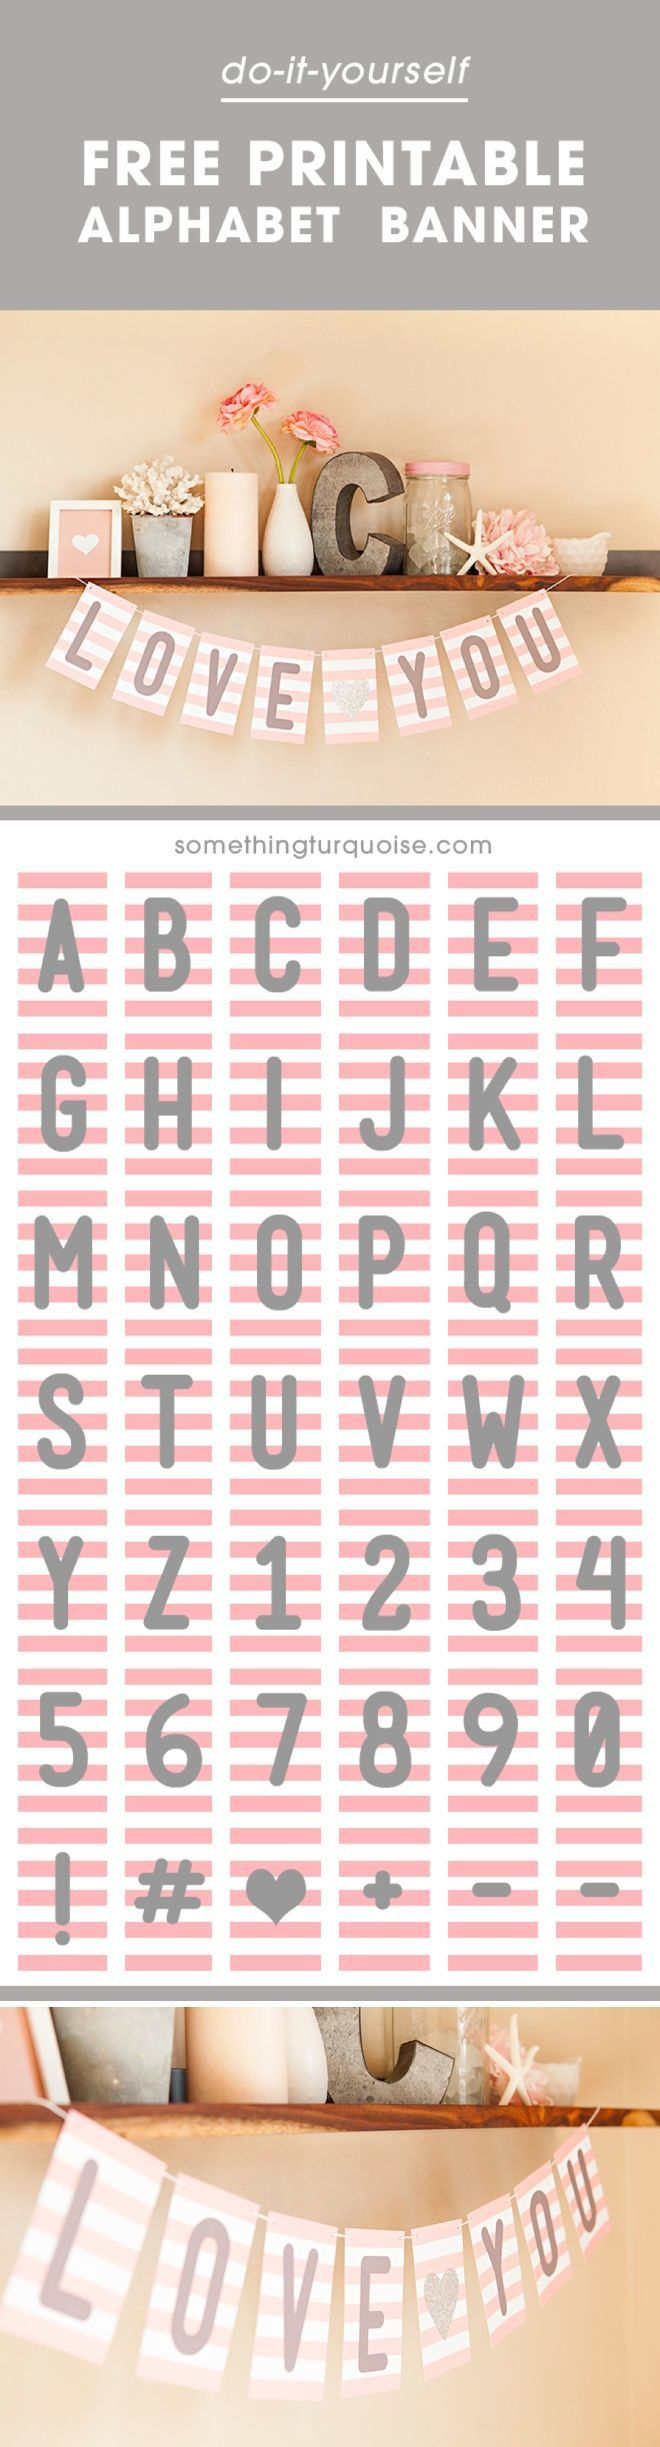 FREE Pink + Gray Printable Alphabet and Number Banner!